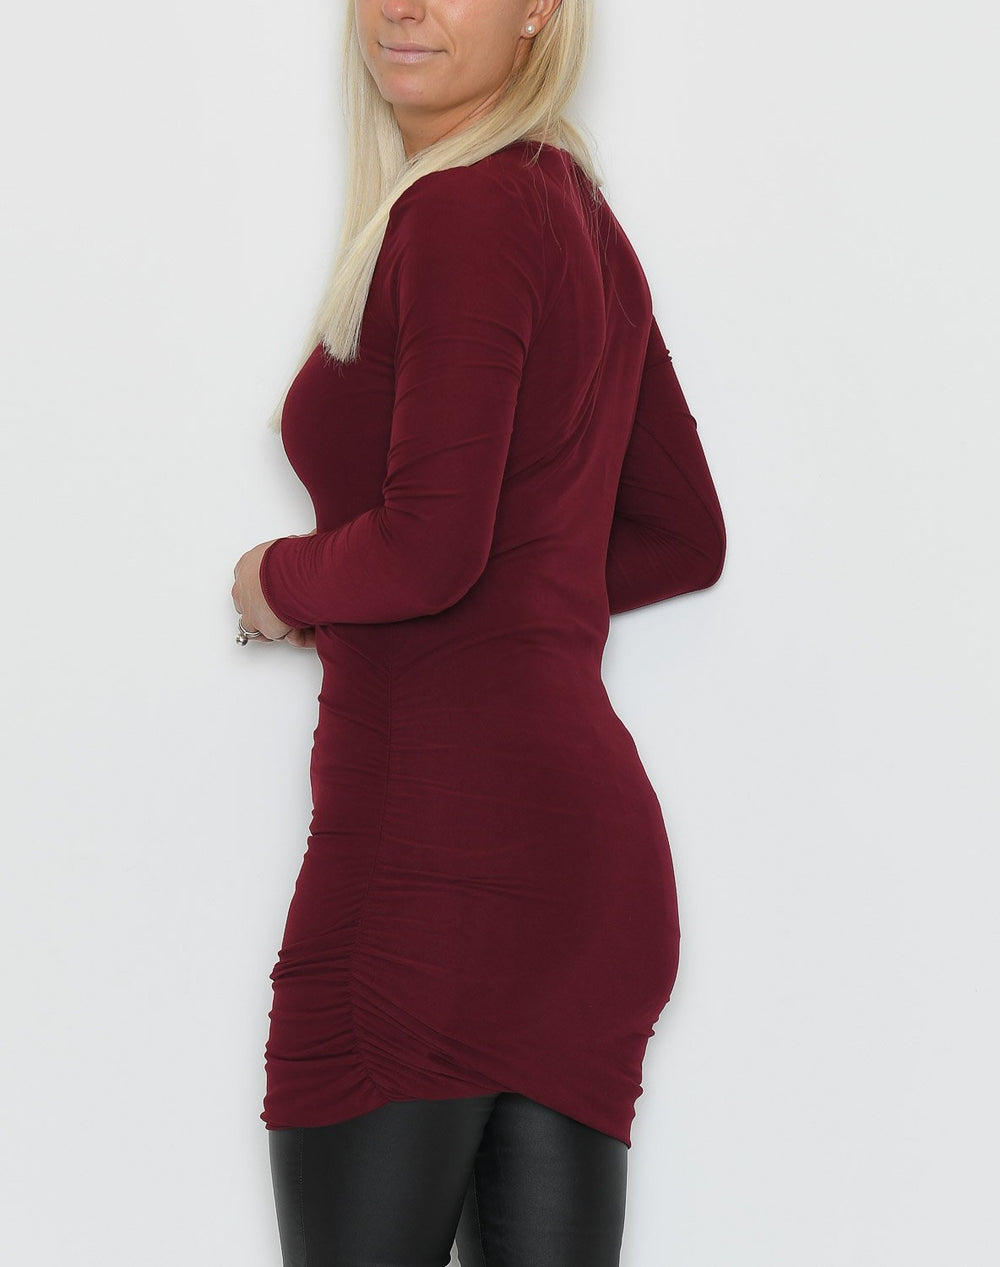 Liberté Alma long dress burgundy - Online-Mode